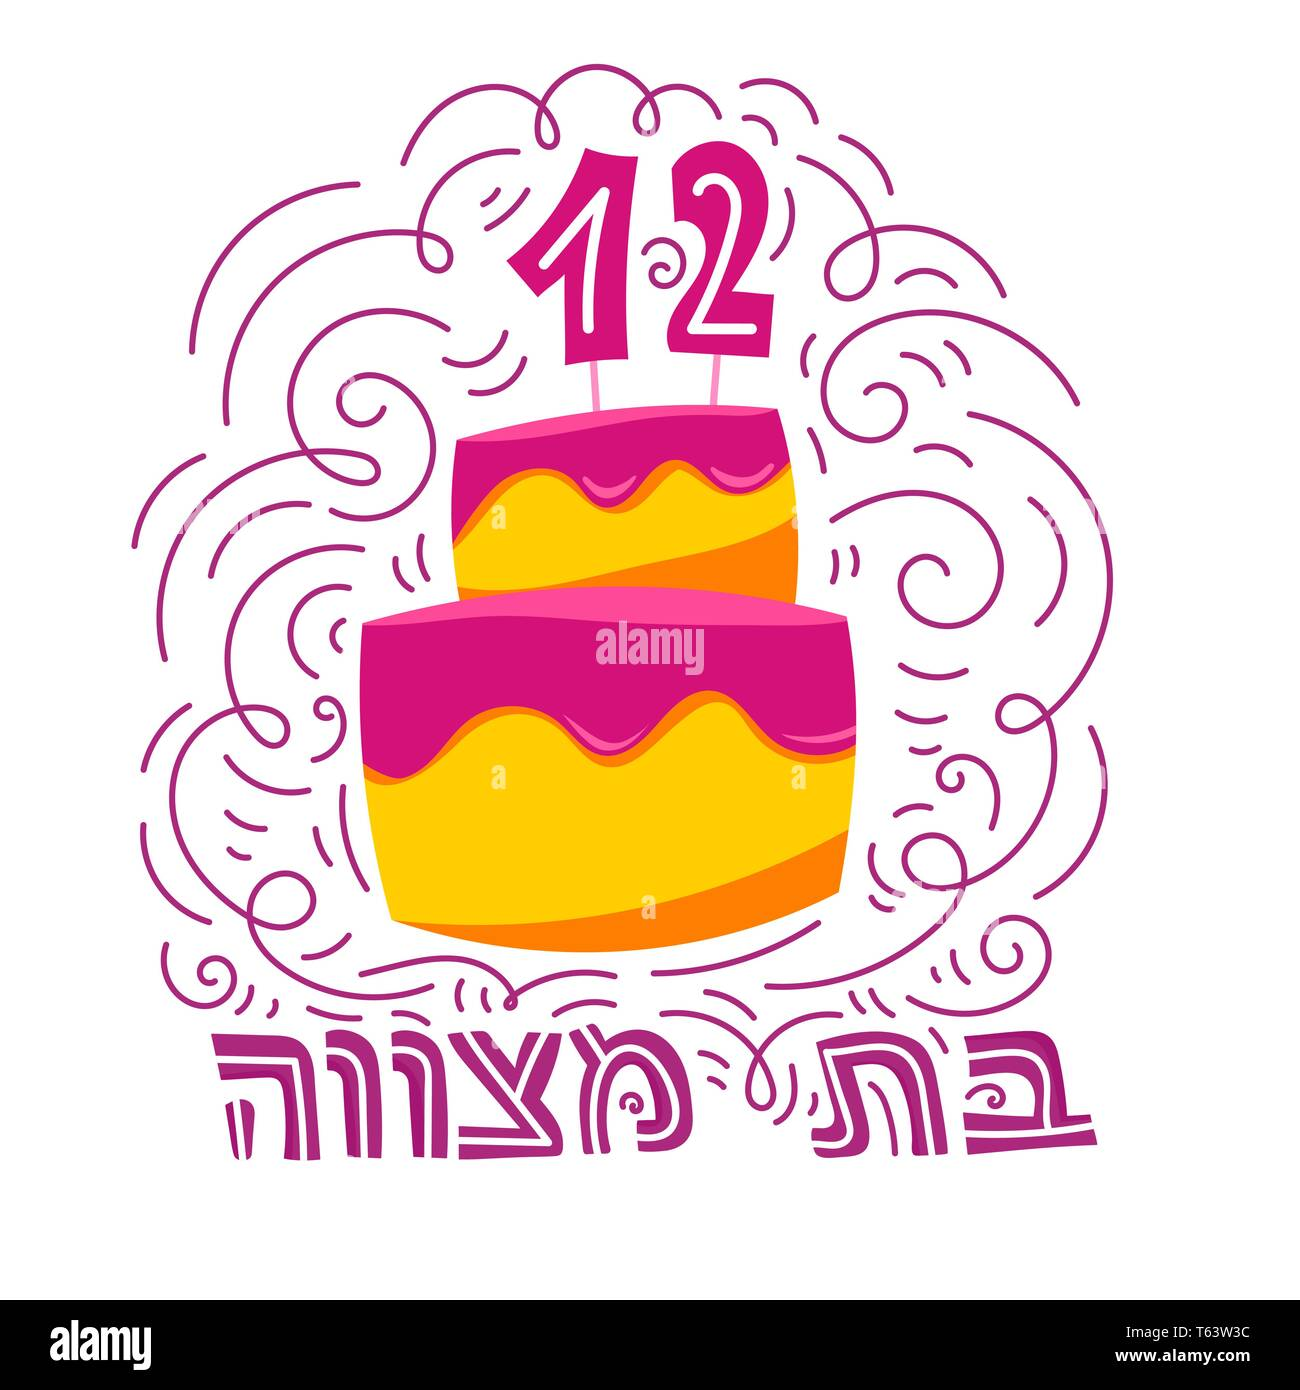 Bat Mitzvah greeting card. Hand drawn vector illustration. Cake with the number 12 on top. Doodle style. Hebrew text: Bat Mitzhvah - Stock Vector